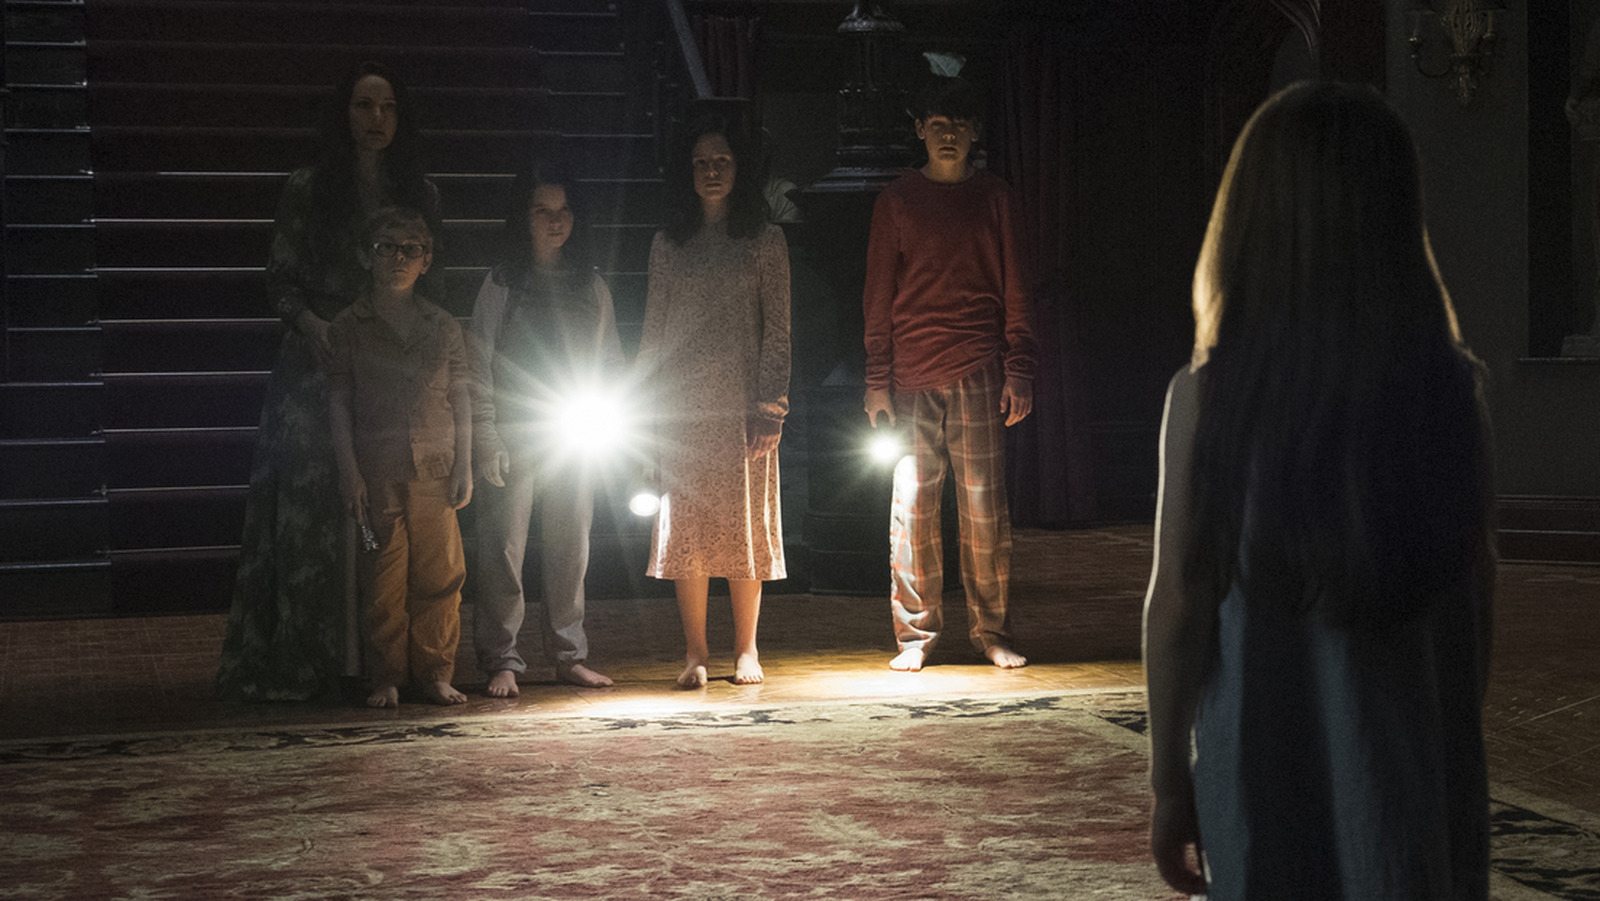 Could Another Haunting Season Be Coming To Netflix? Mike Flanagan Says ... Maybe